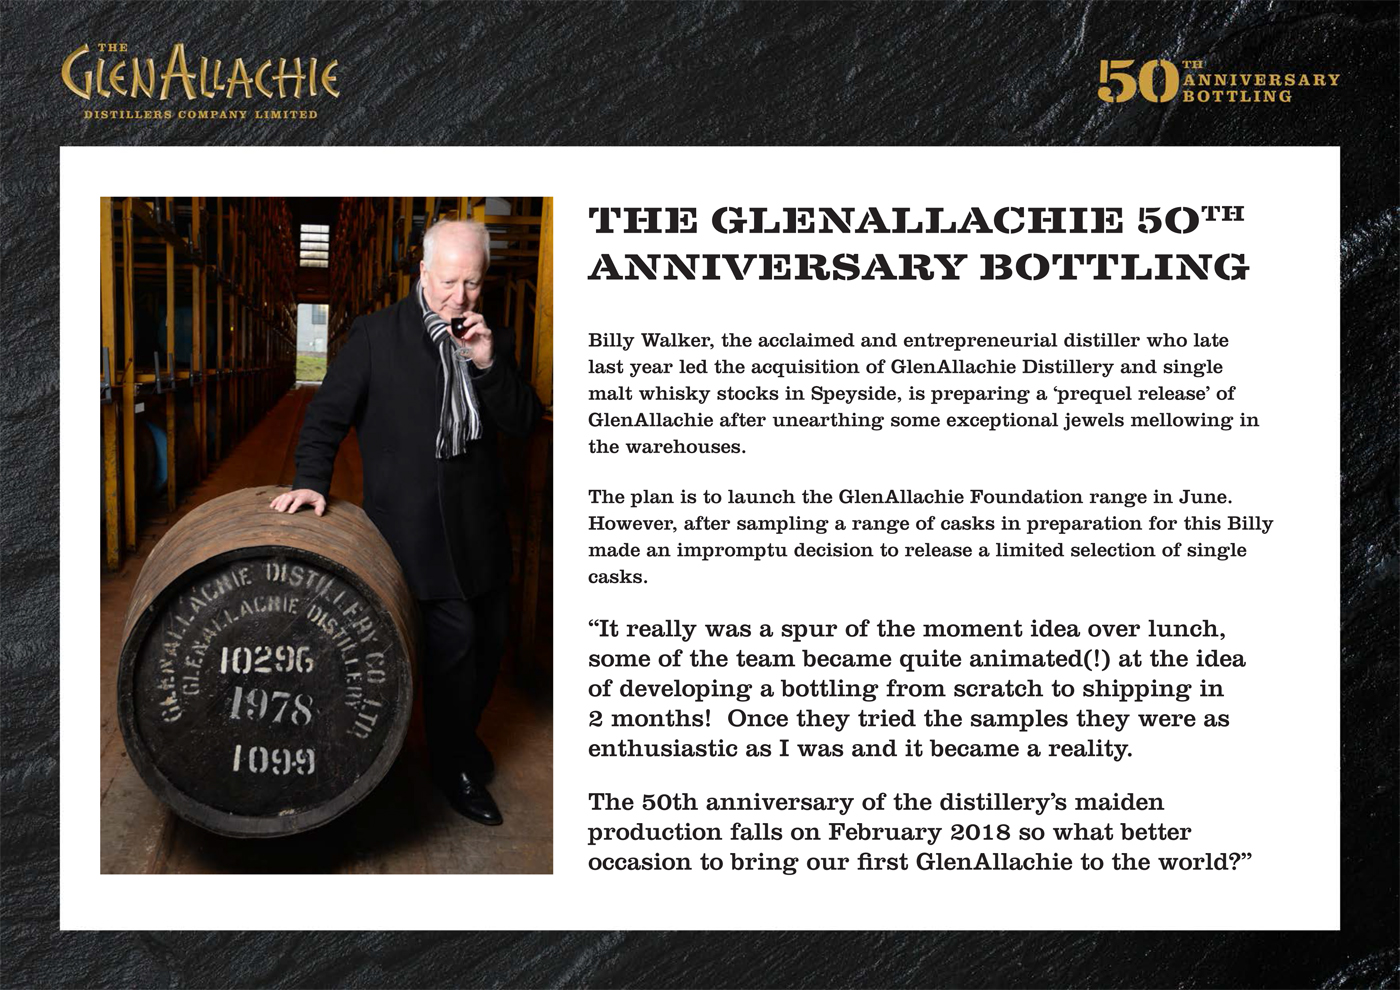 The GlenAllachie 50th Anniversary